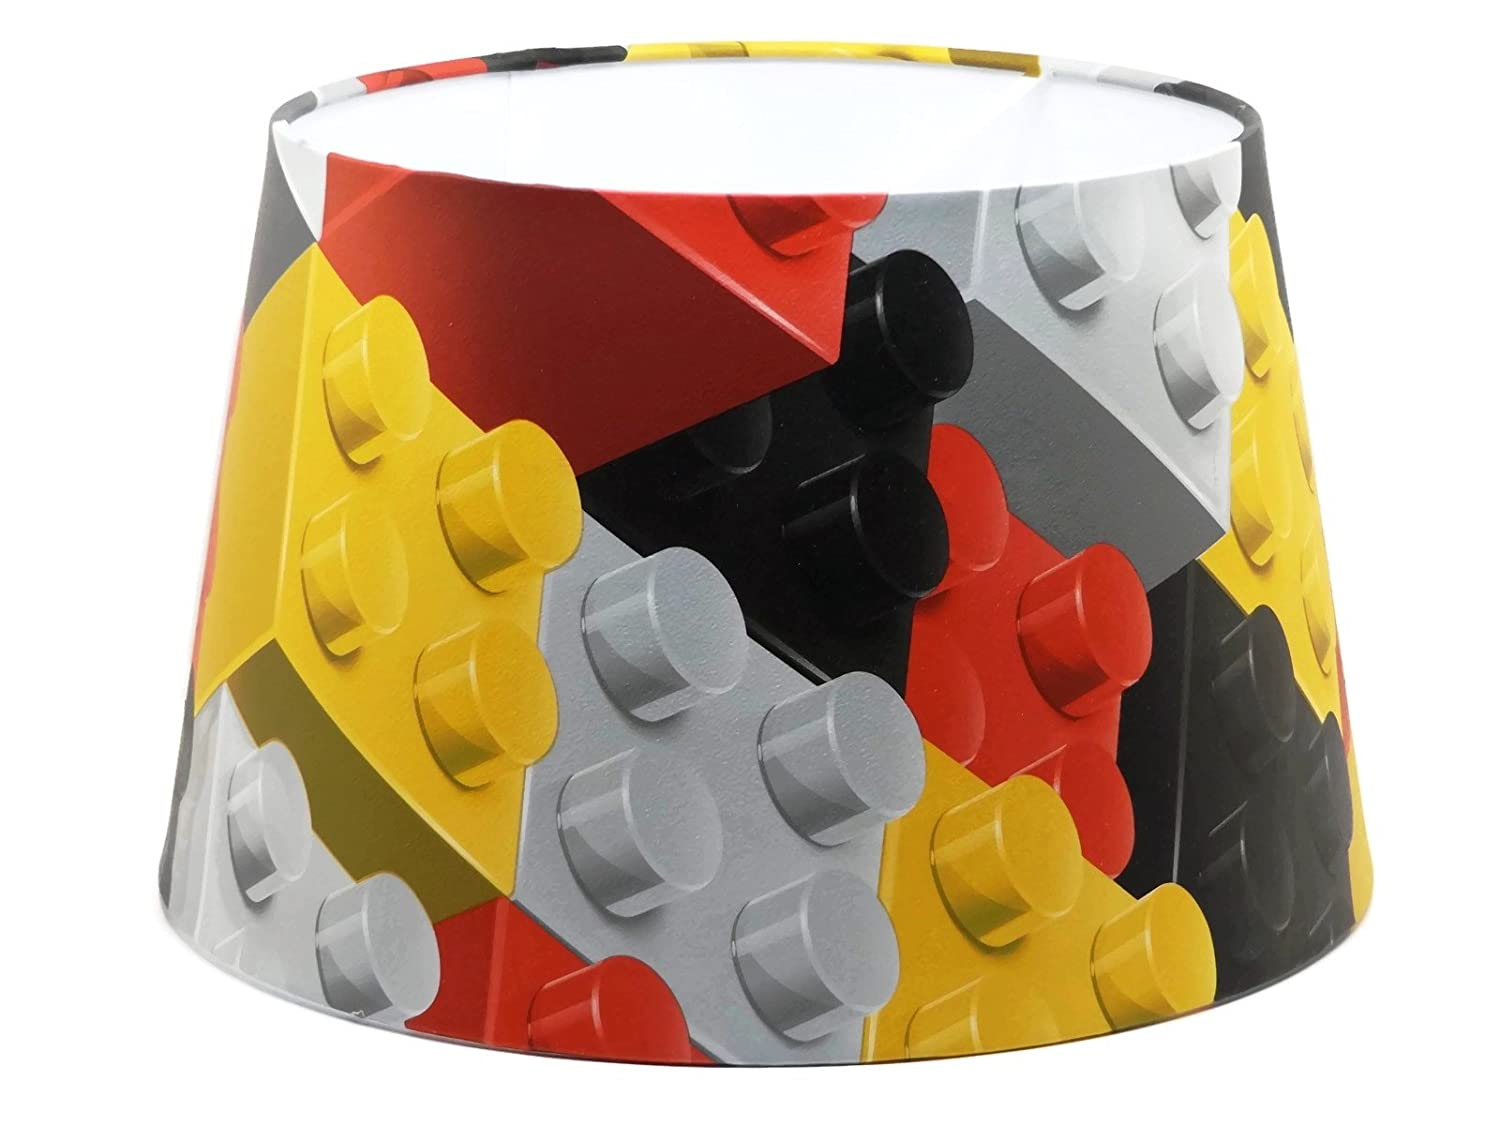 Lego Accessories For Bedroom Lego Lights Lantern Amazoncouk Toys Games